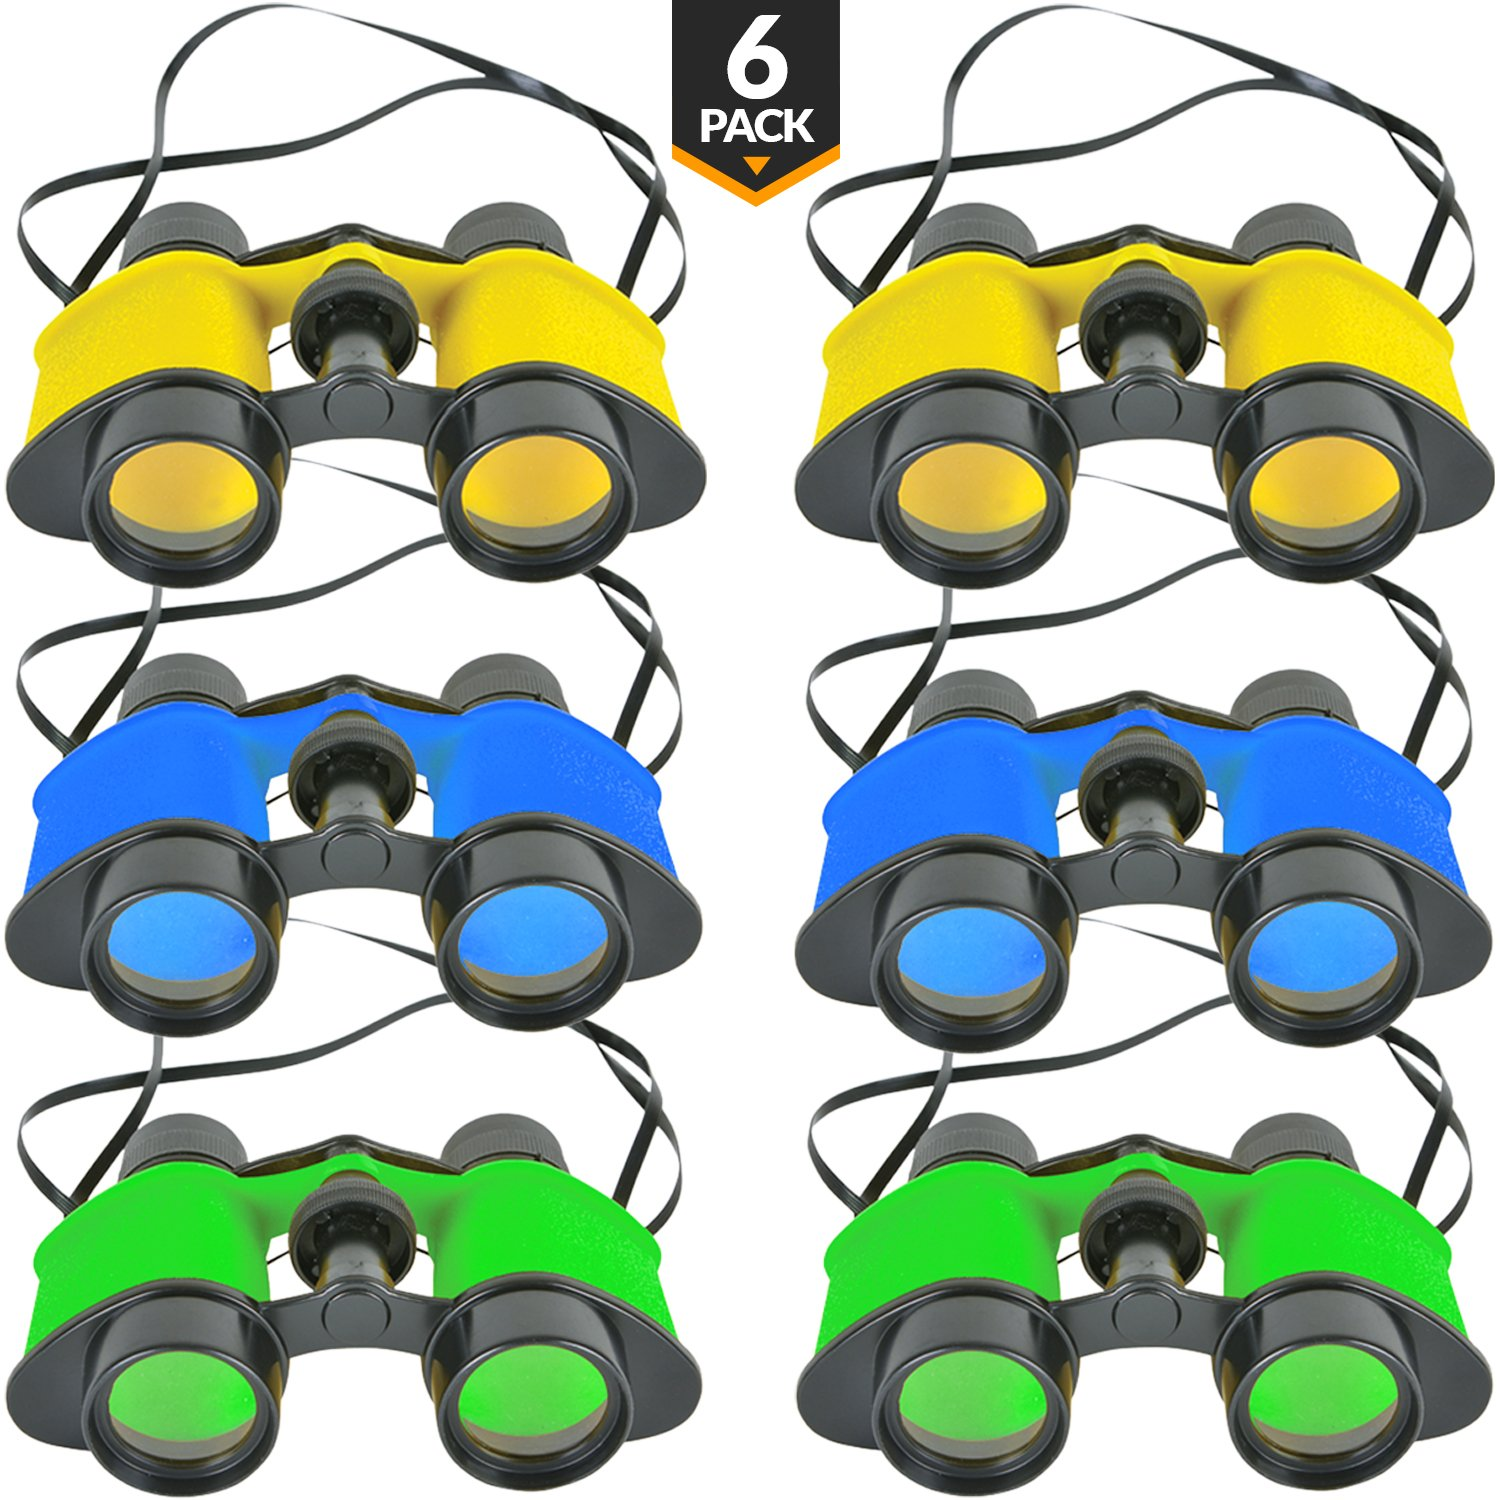 Kids Toy Binoculars (6 Pack) In Assorted Vivid Colors, With Neck String, Small Prizes, Perfect Party Favor For Boys Girls, By Bedwina